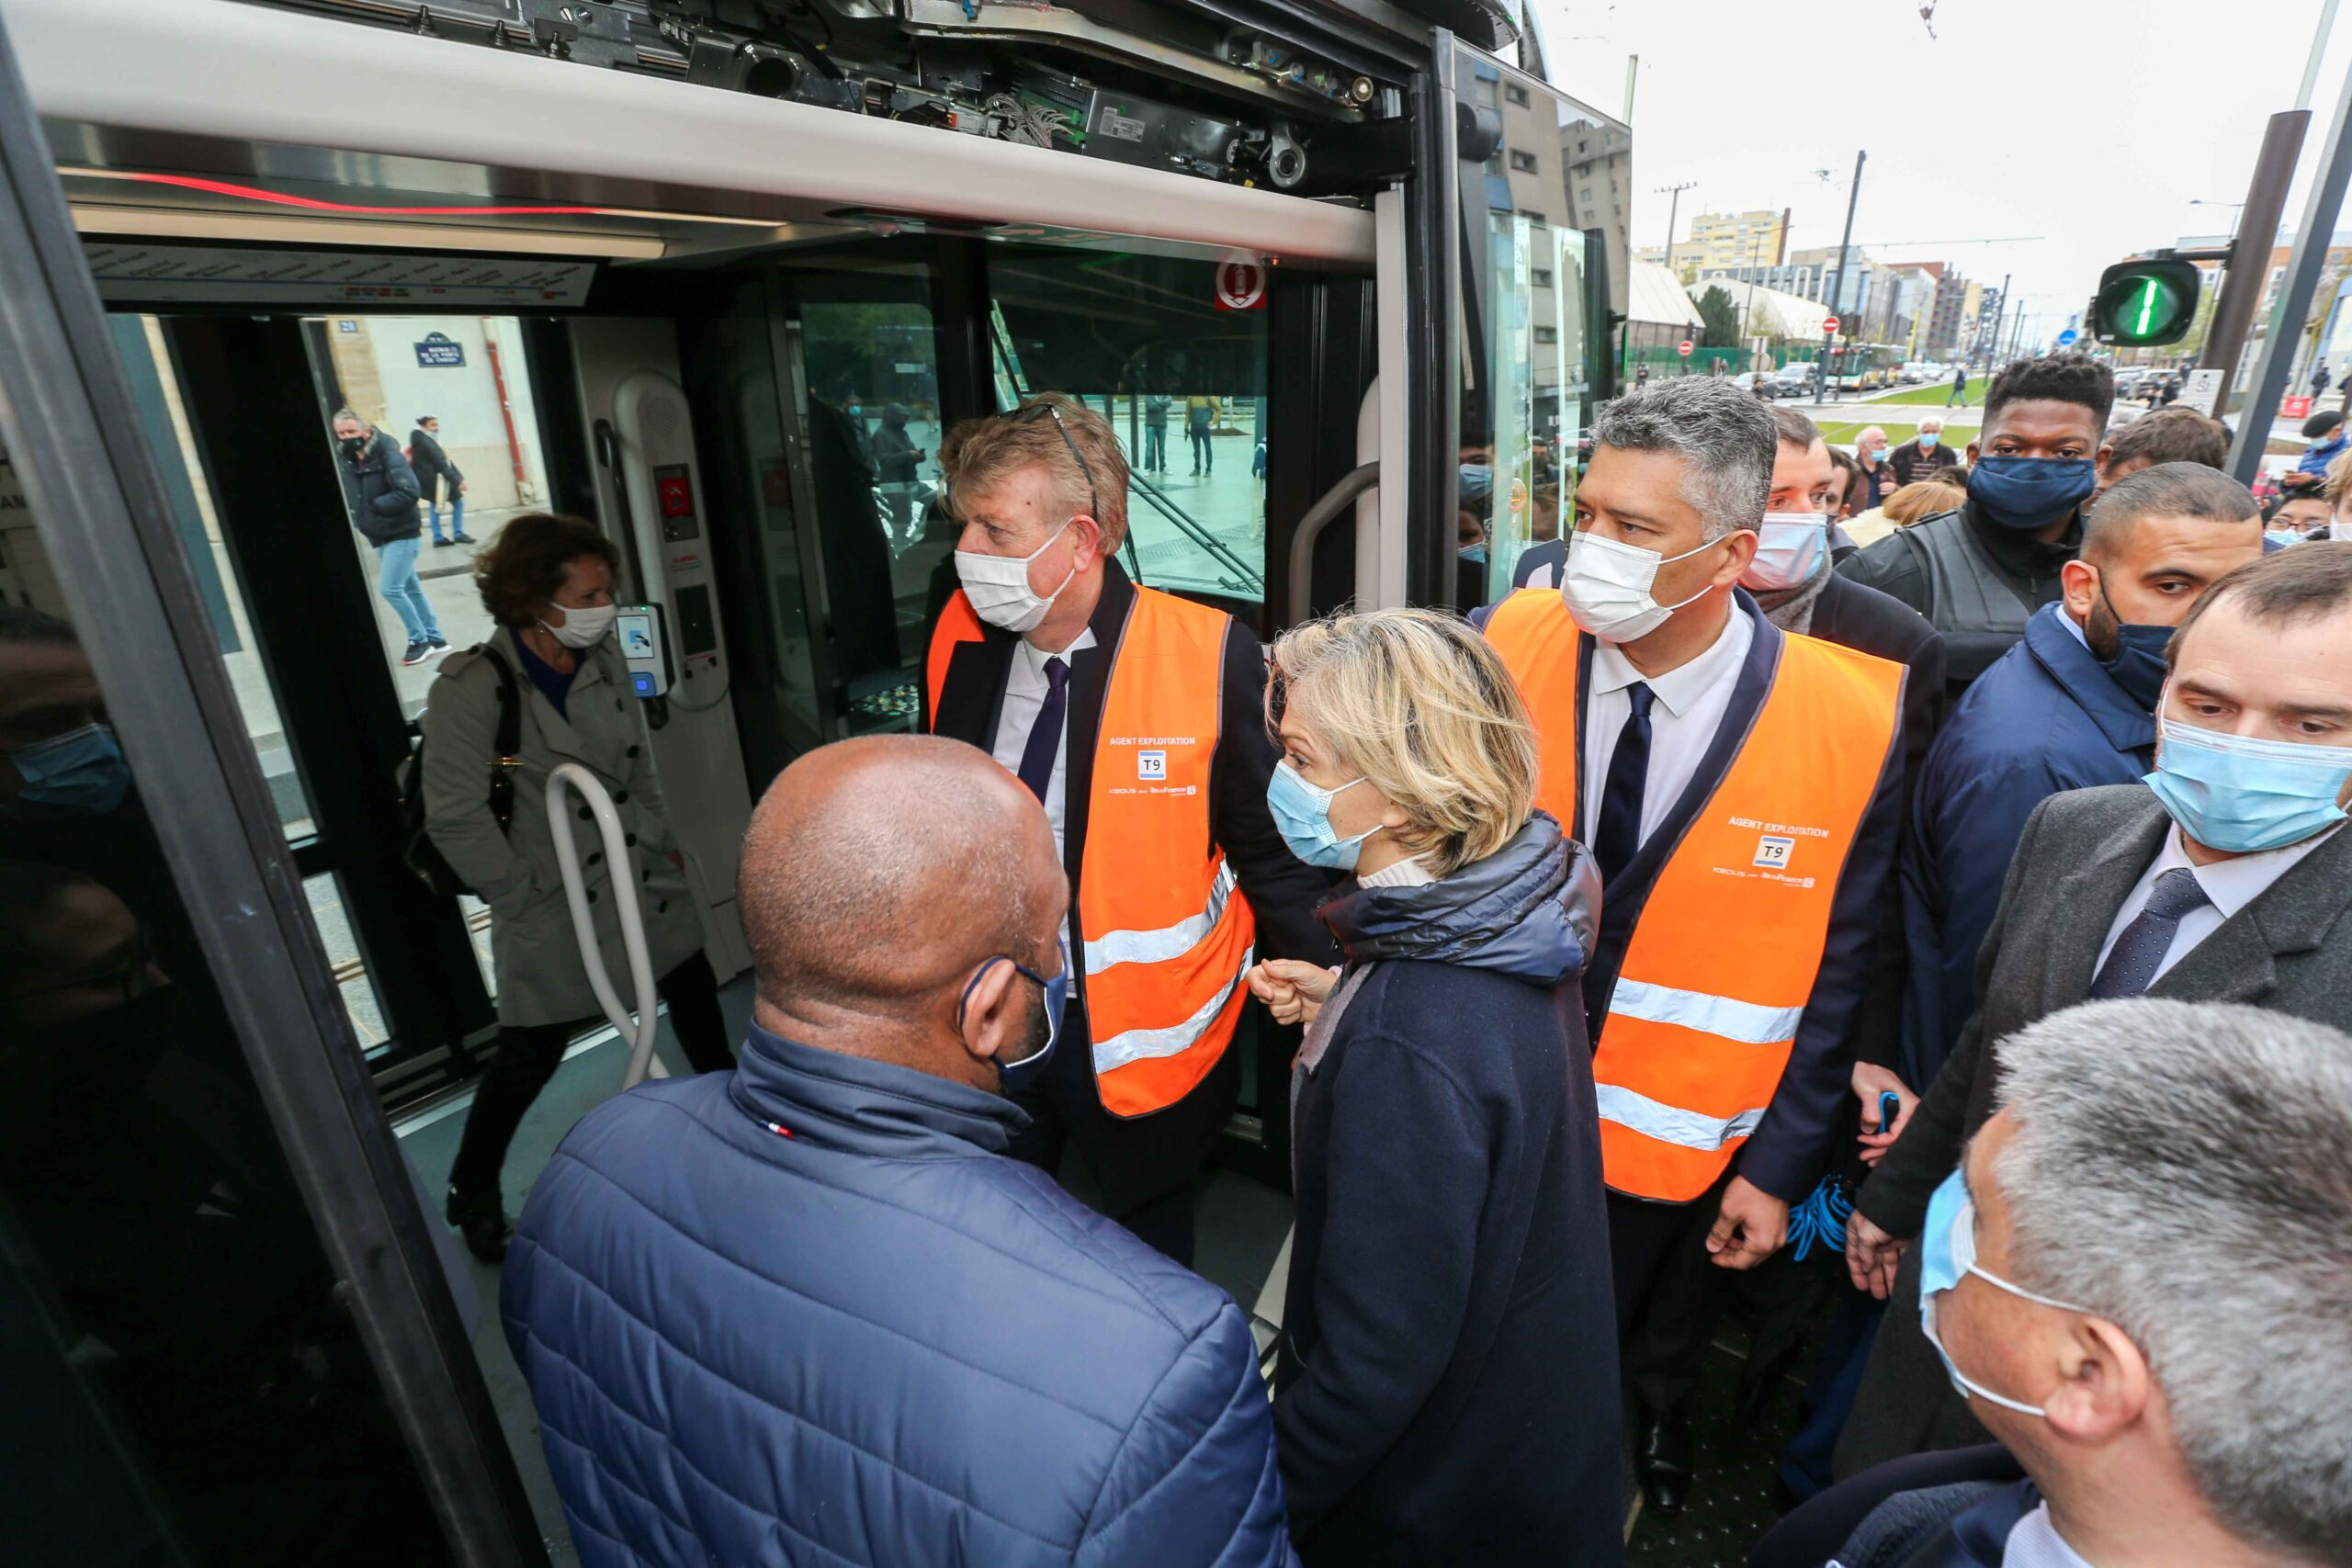 President of the French region of Ile-de-France Valerie Pecresse (C) inaugurates the new tramway T9 tram line between Porte de Choisy and Orly City, southeastern Paris, on April 10, 2021 at Porte de Choisy, in Paris.Line T9 connects Porte de Choisy Paris